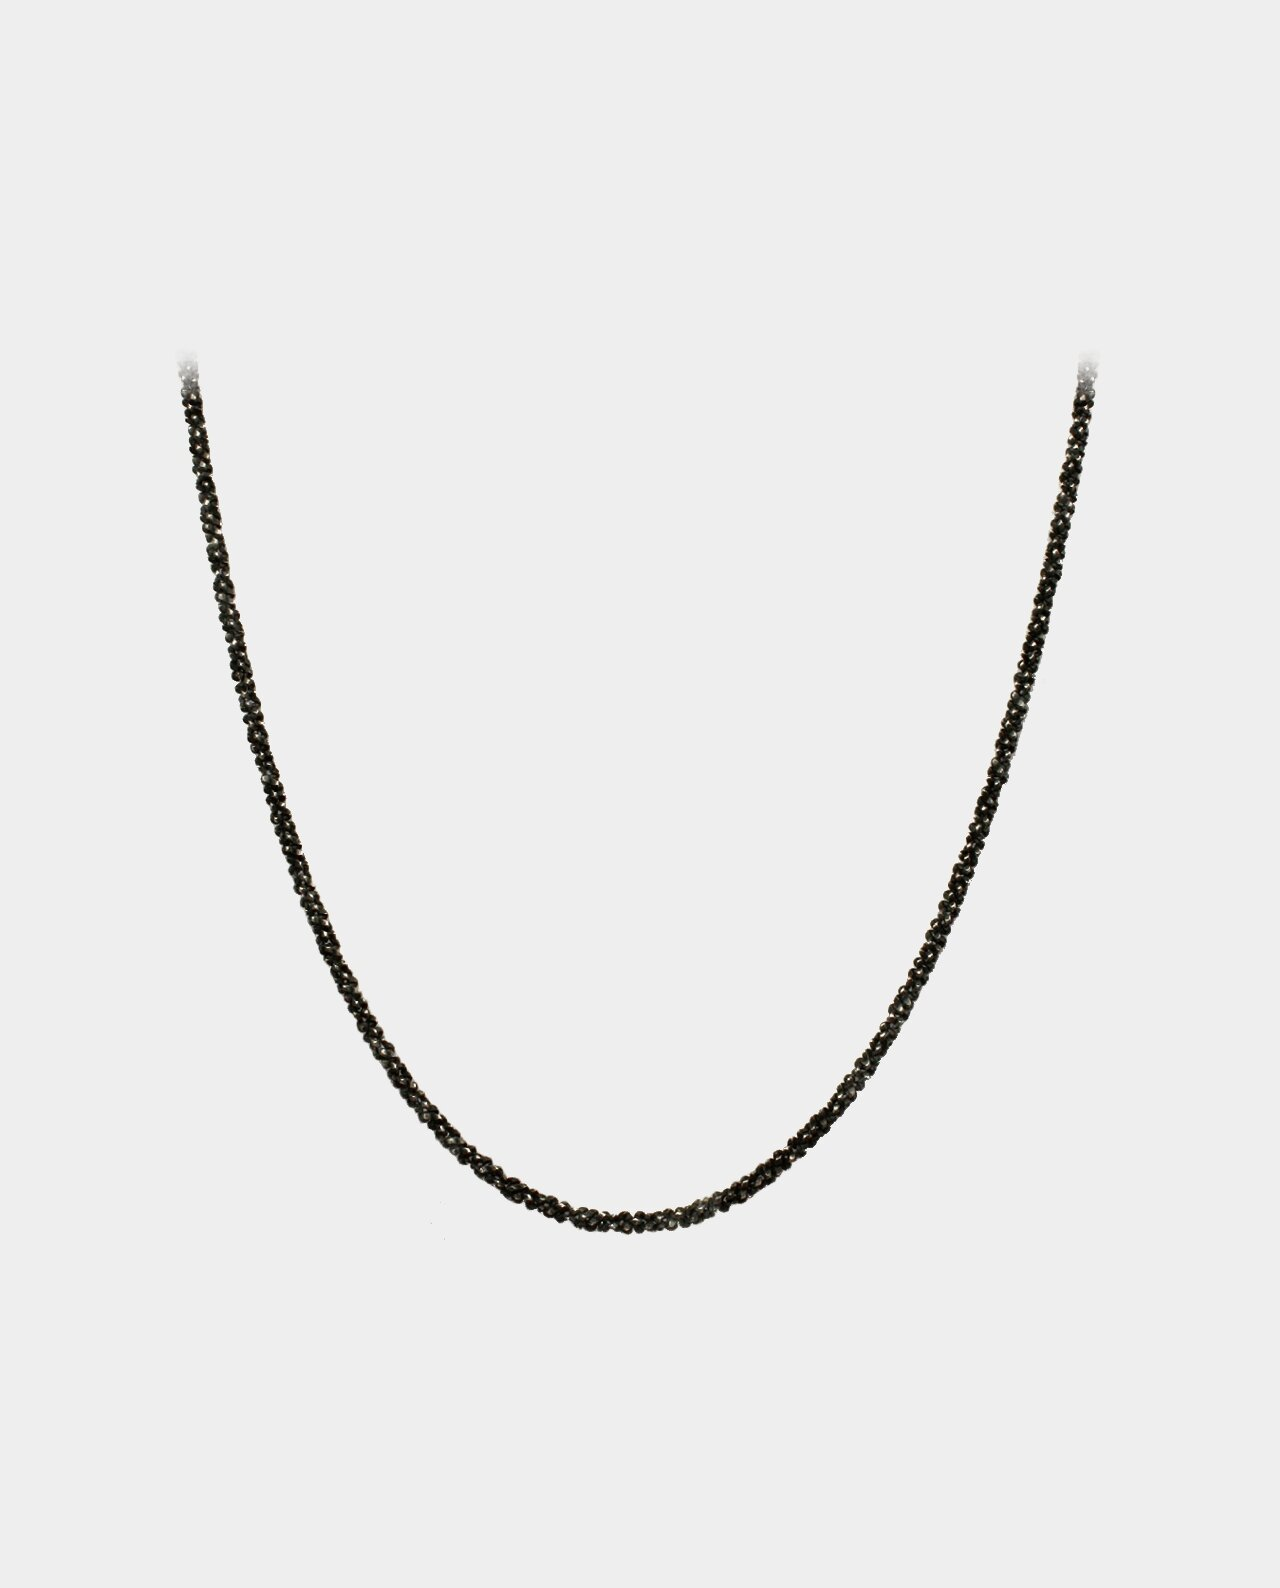 Necklace of twisted venezia with a different and stylish surface in shiny and black oxidized sterling silver